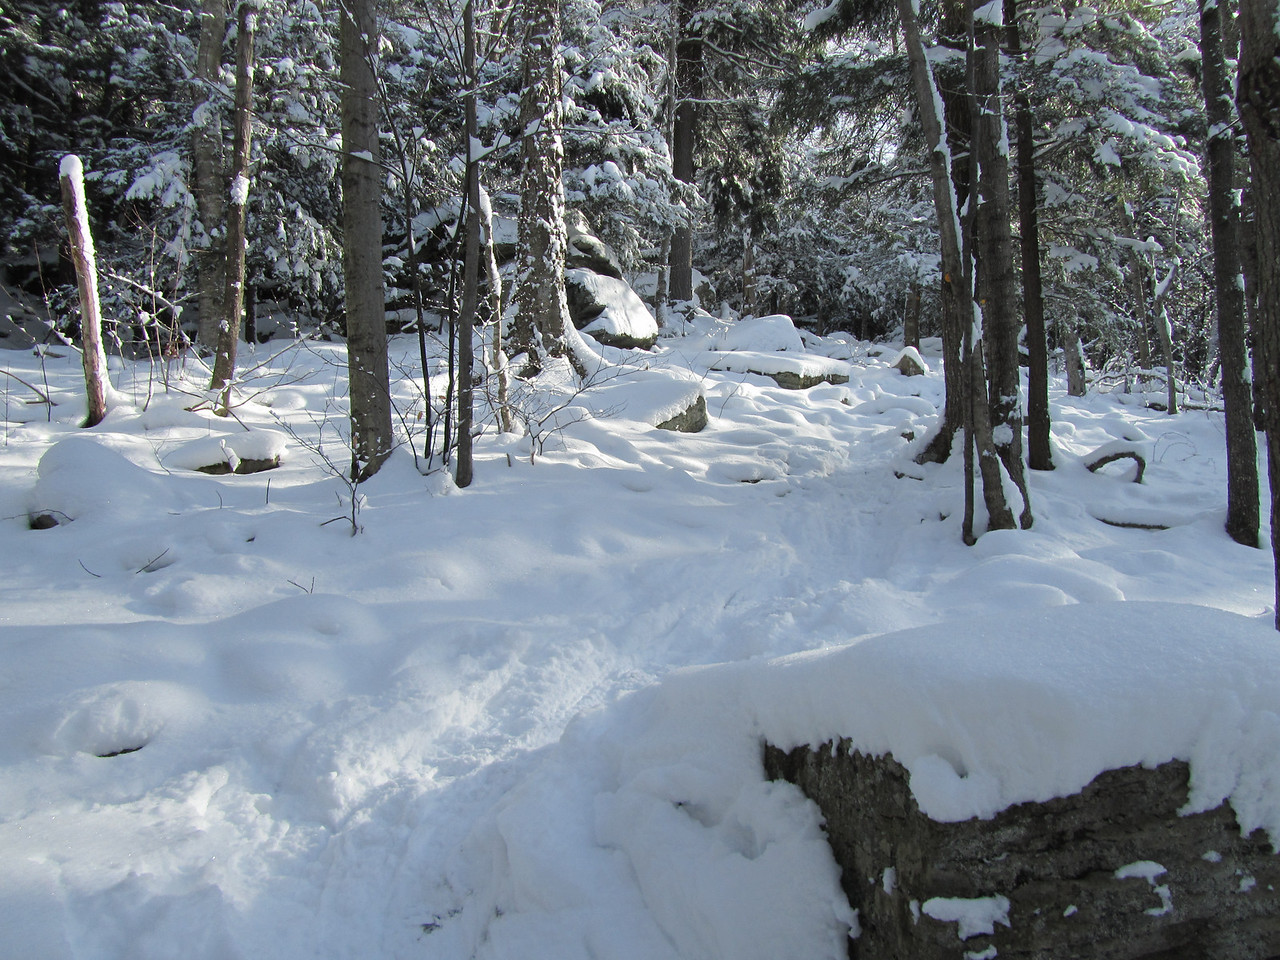 The trailhead was a little rocky but the snow and previous snowshoers packed it smooth.